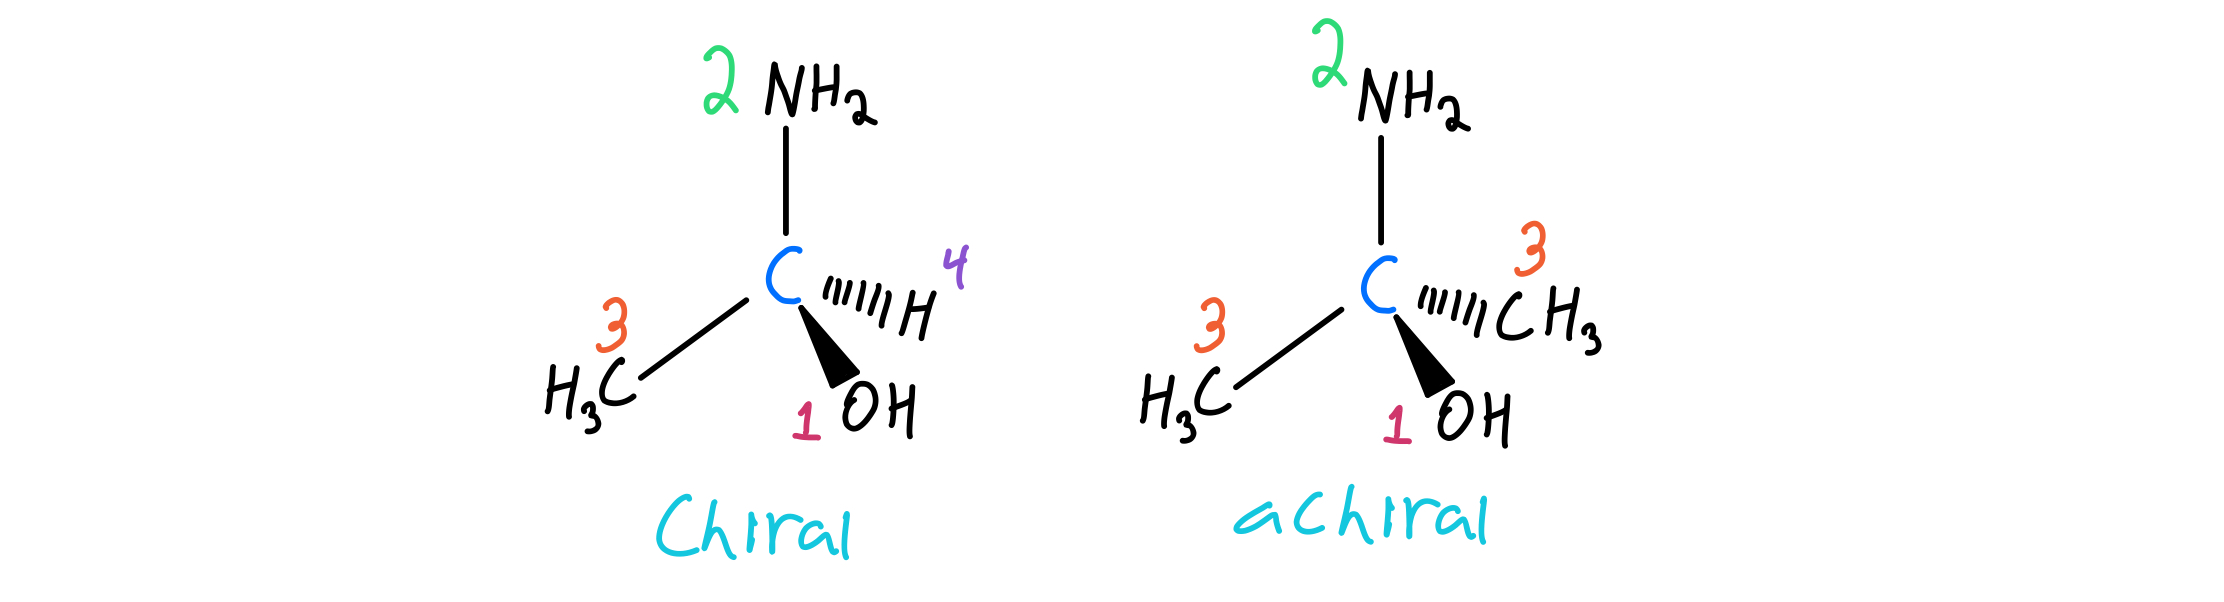 Chiral-and-achiral-molecules